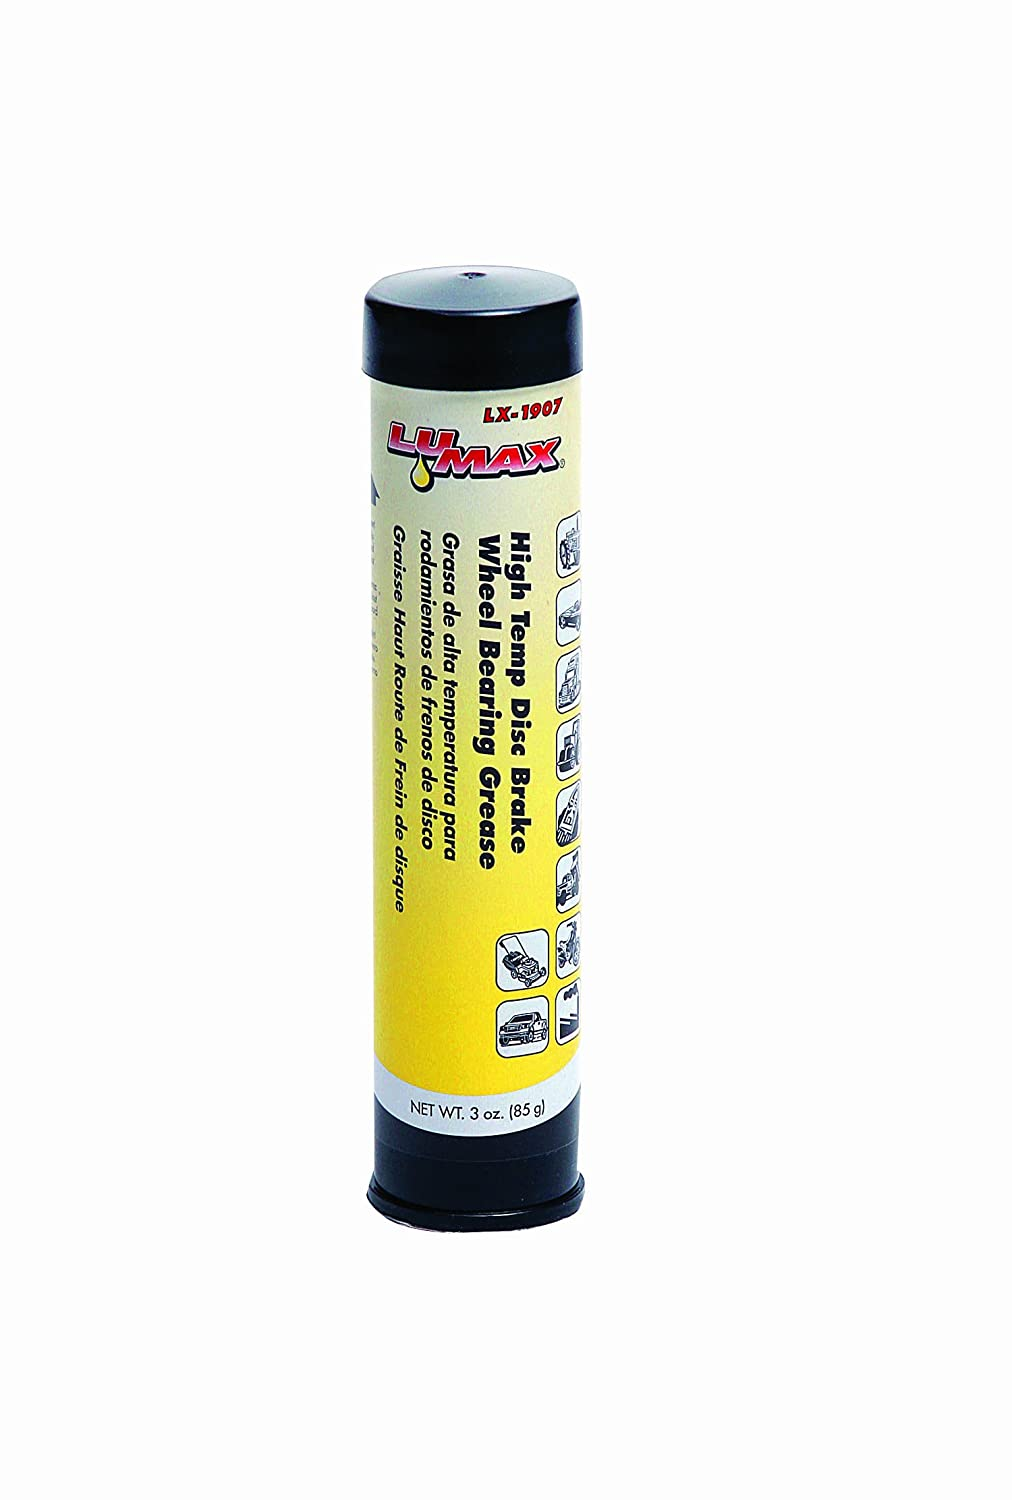 Lumax LX-1907 Blue High Temparature Disc Brake Wheel Bearing Grease Cartridge - 3 oz.